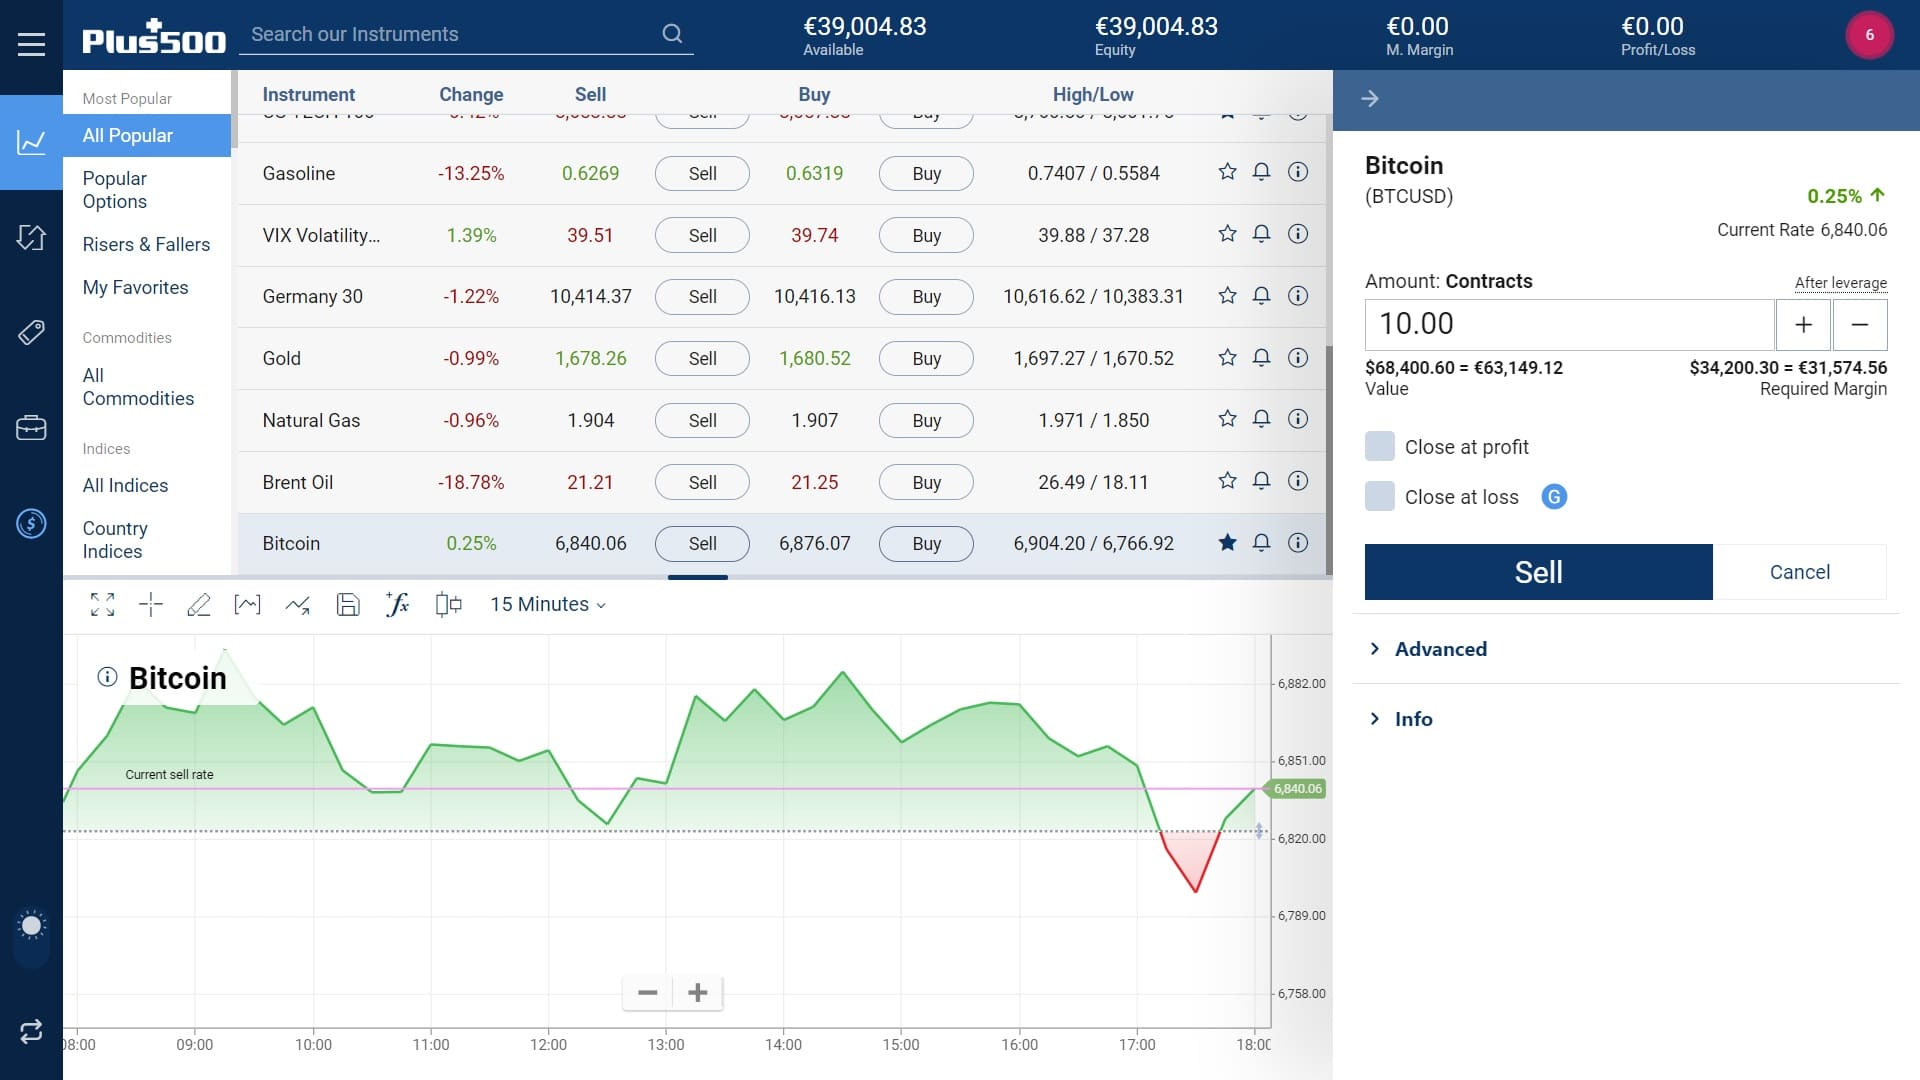 Bitcoin trading on Plus500's WebTrader platform